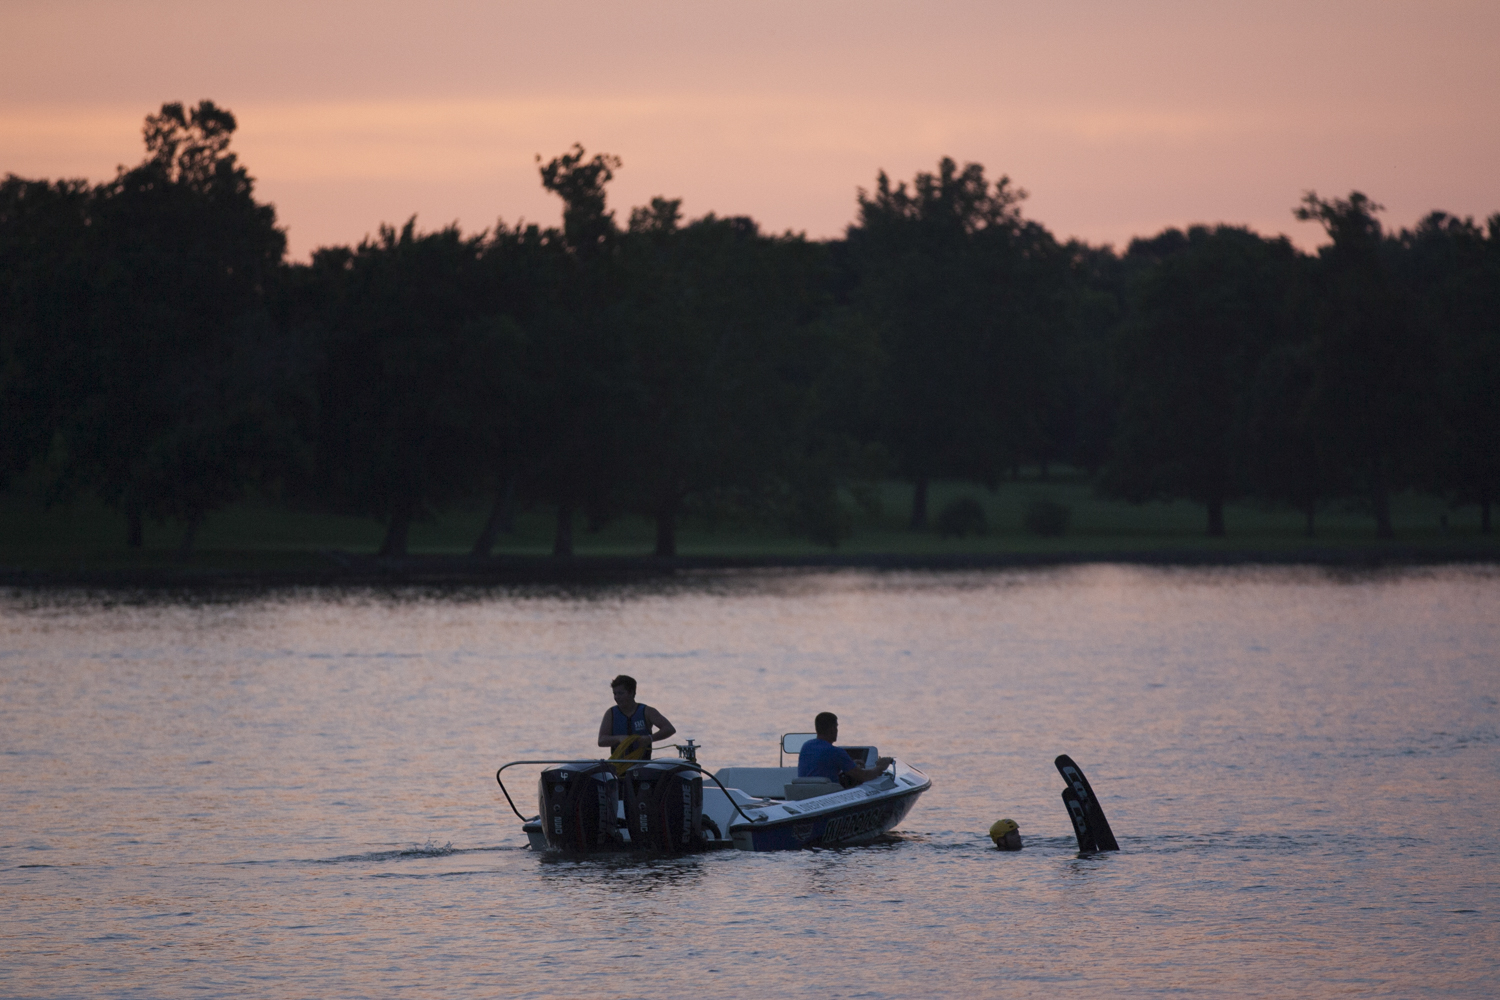 A skier and a boat driver coordinate their next practice run as the sun sets on Tuesday, July 31, 2018. [SCOTT P. YATES/RRSTAR.COM STAFF]